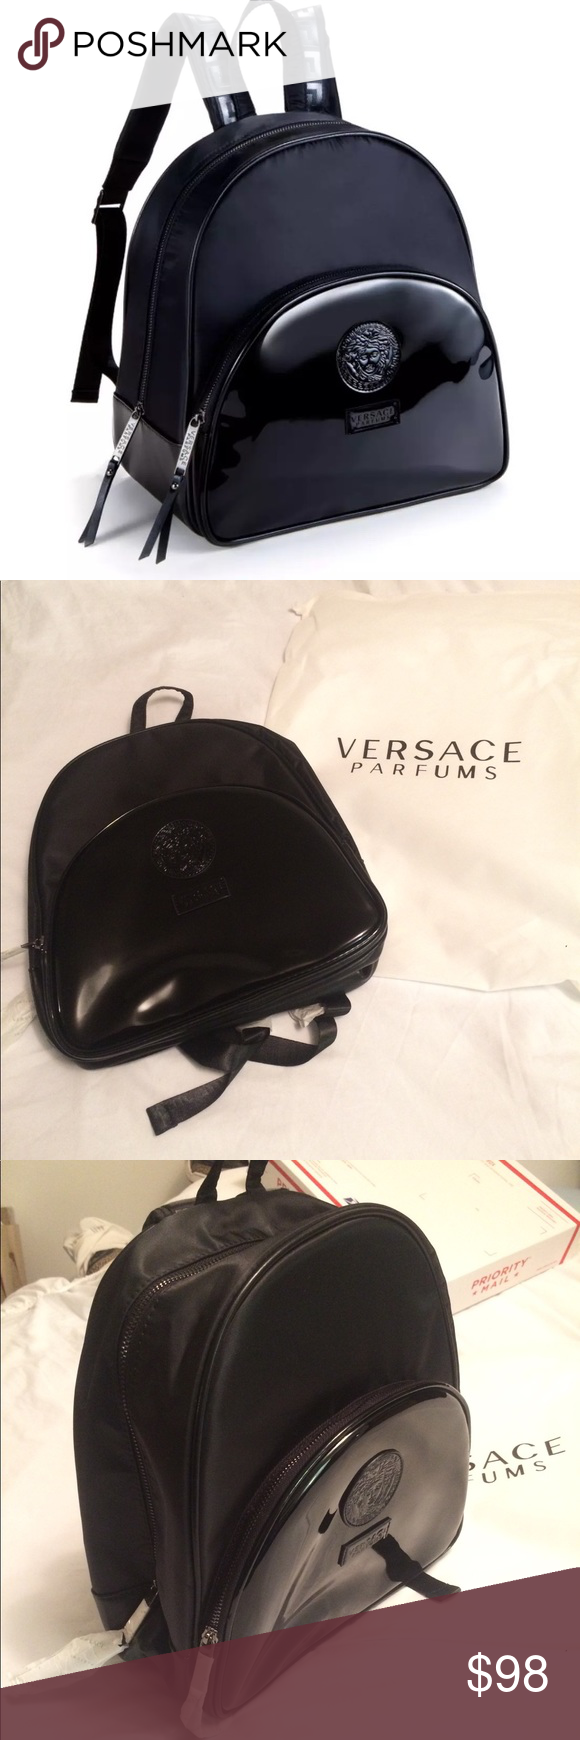 15b7b6386a Versace Parfums Backpack 🎒 Versace Parfums Backpack 🎒 Limited Edition  Comes with Dust bag 100% Authentic Color Black Measurements 12 x 12 x 6 Medusa  Head ...